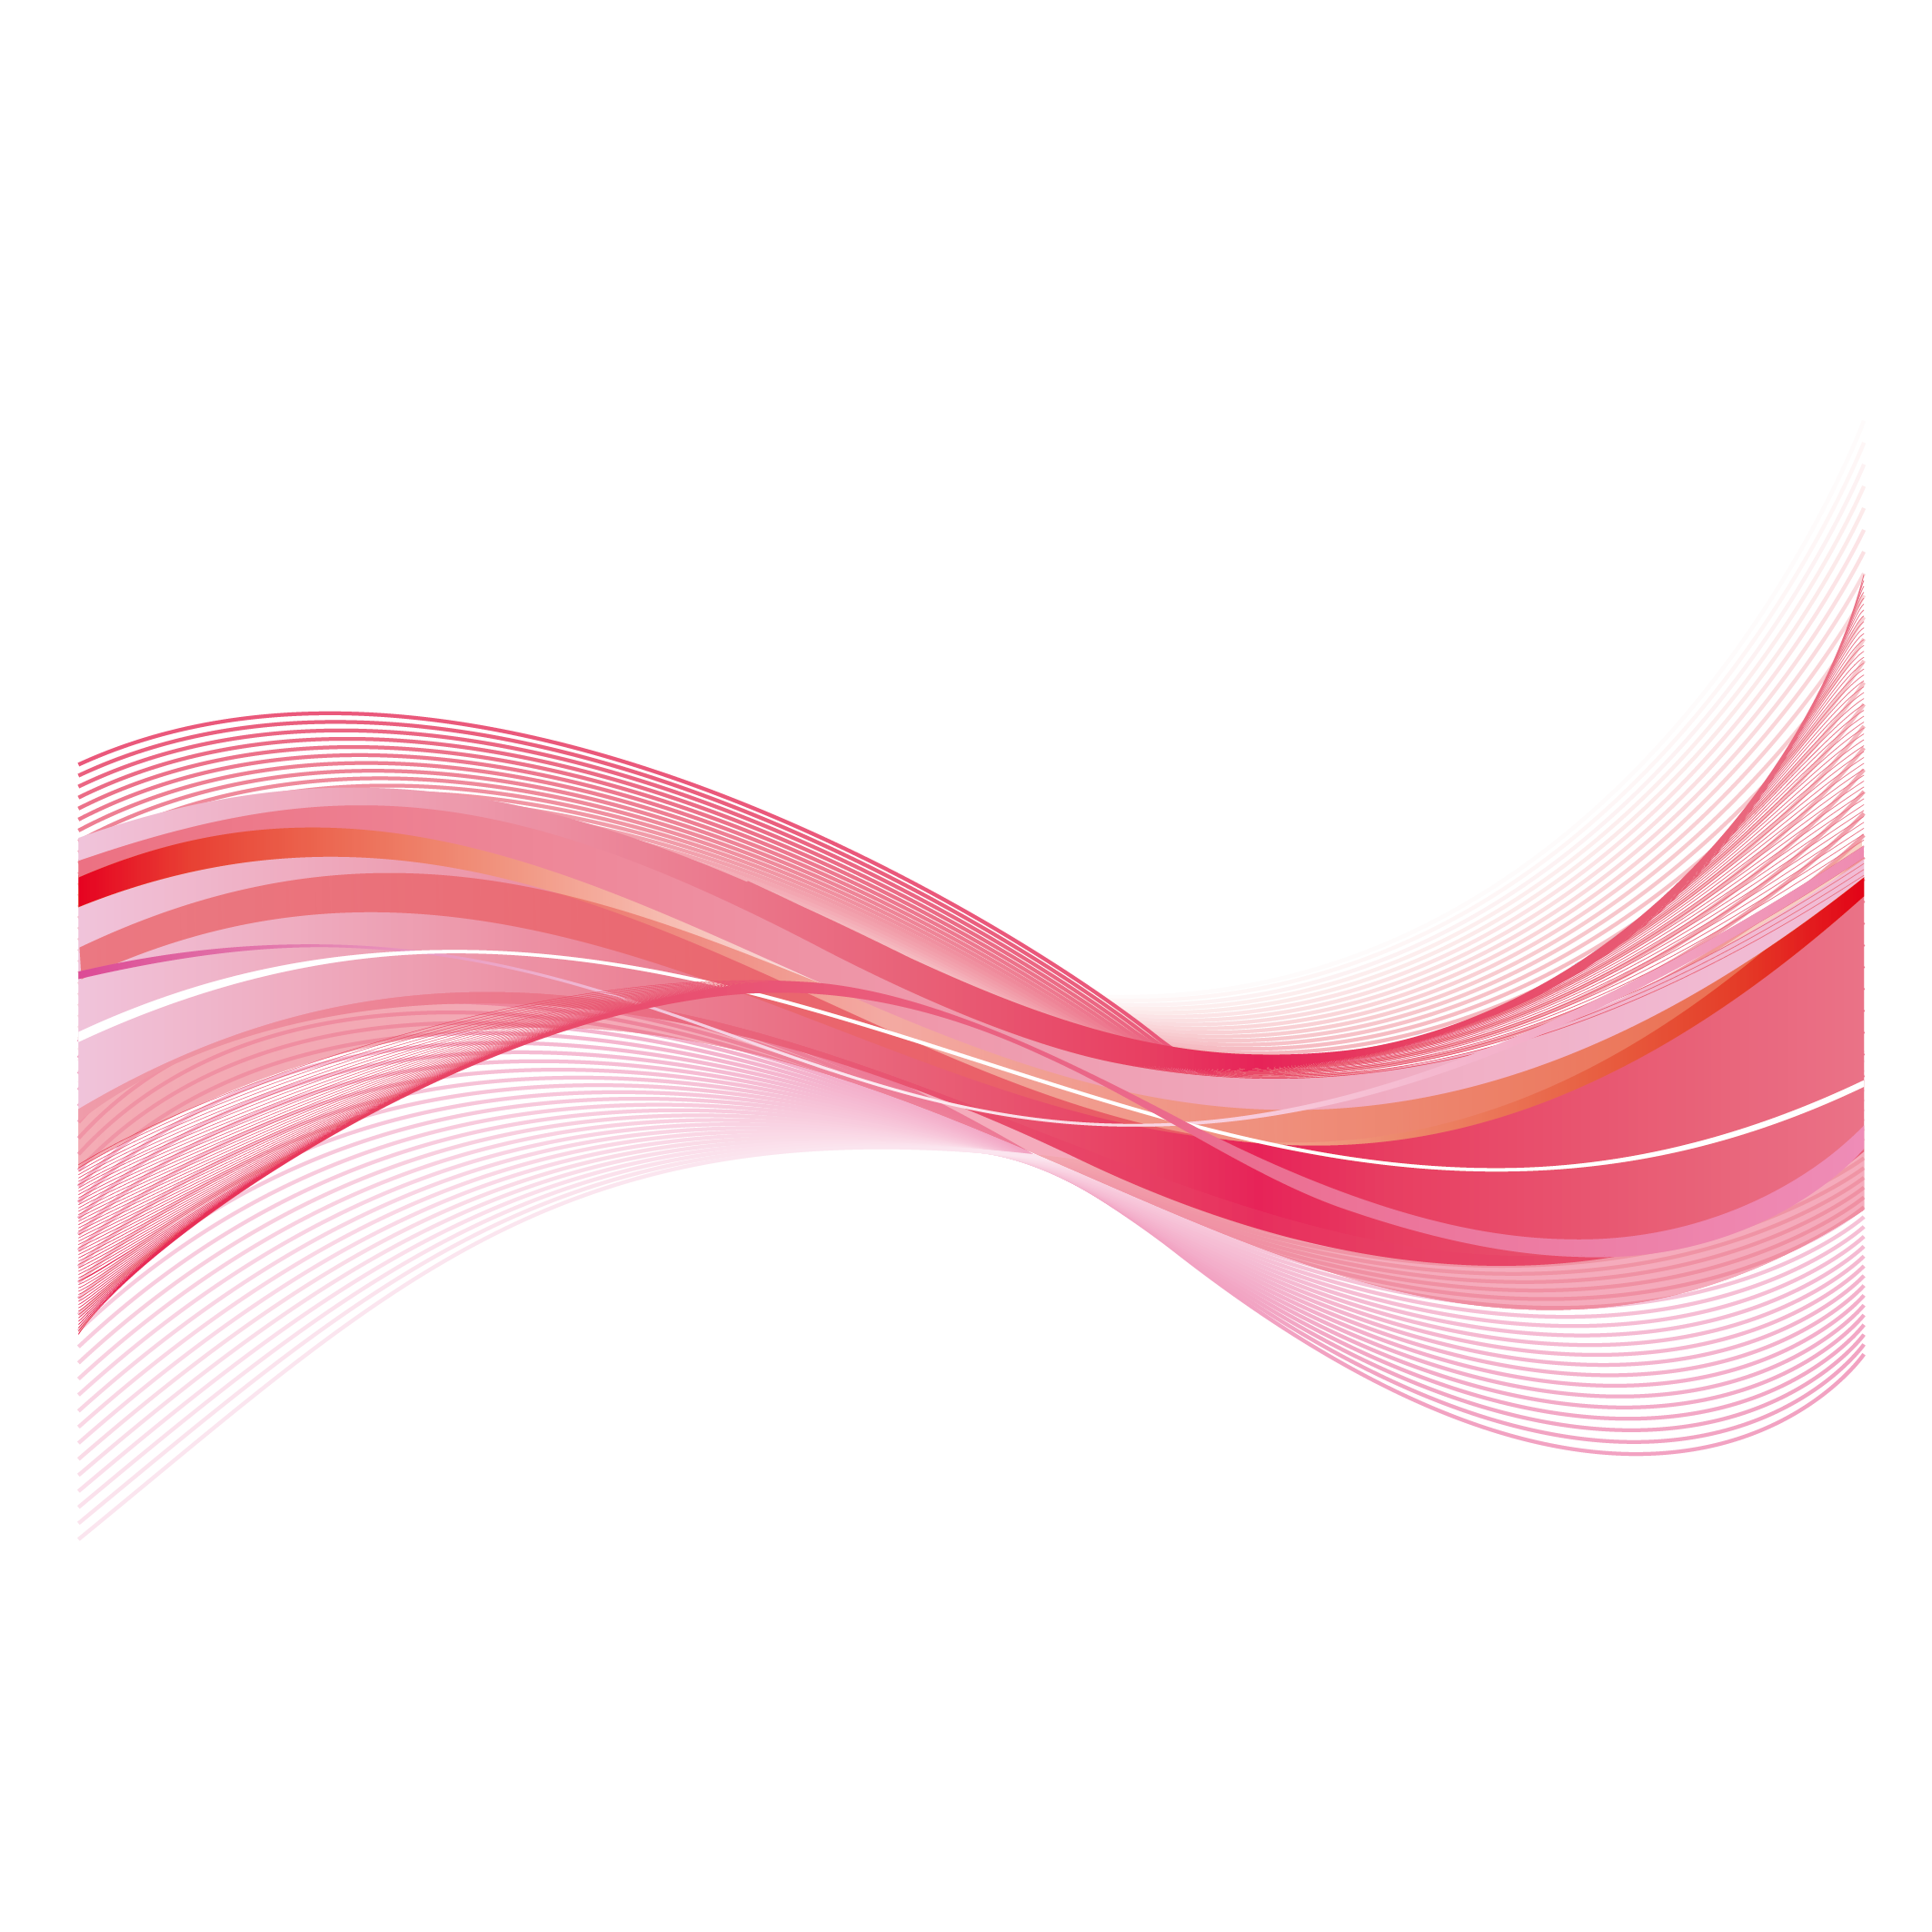 Pink wave png. Red flowing cover background